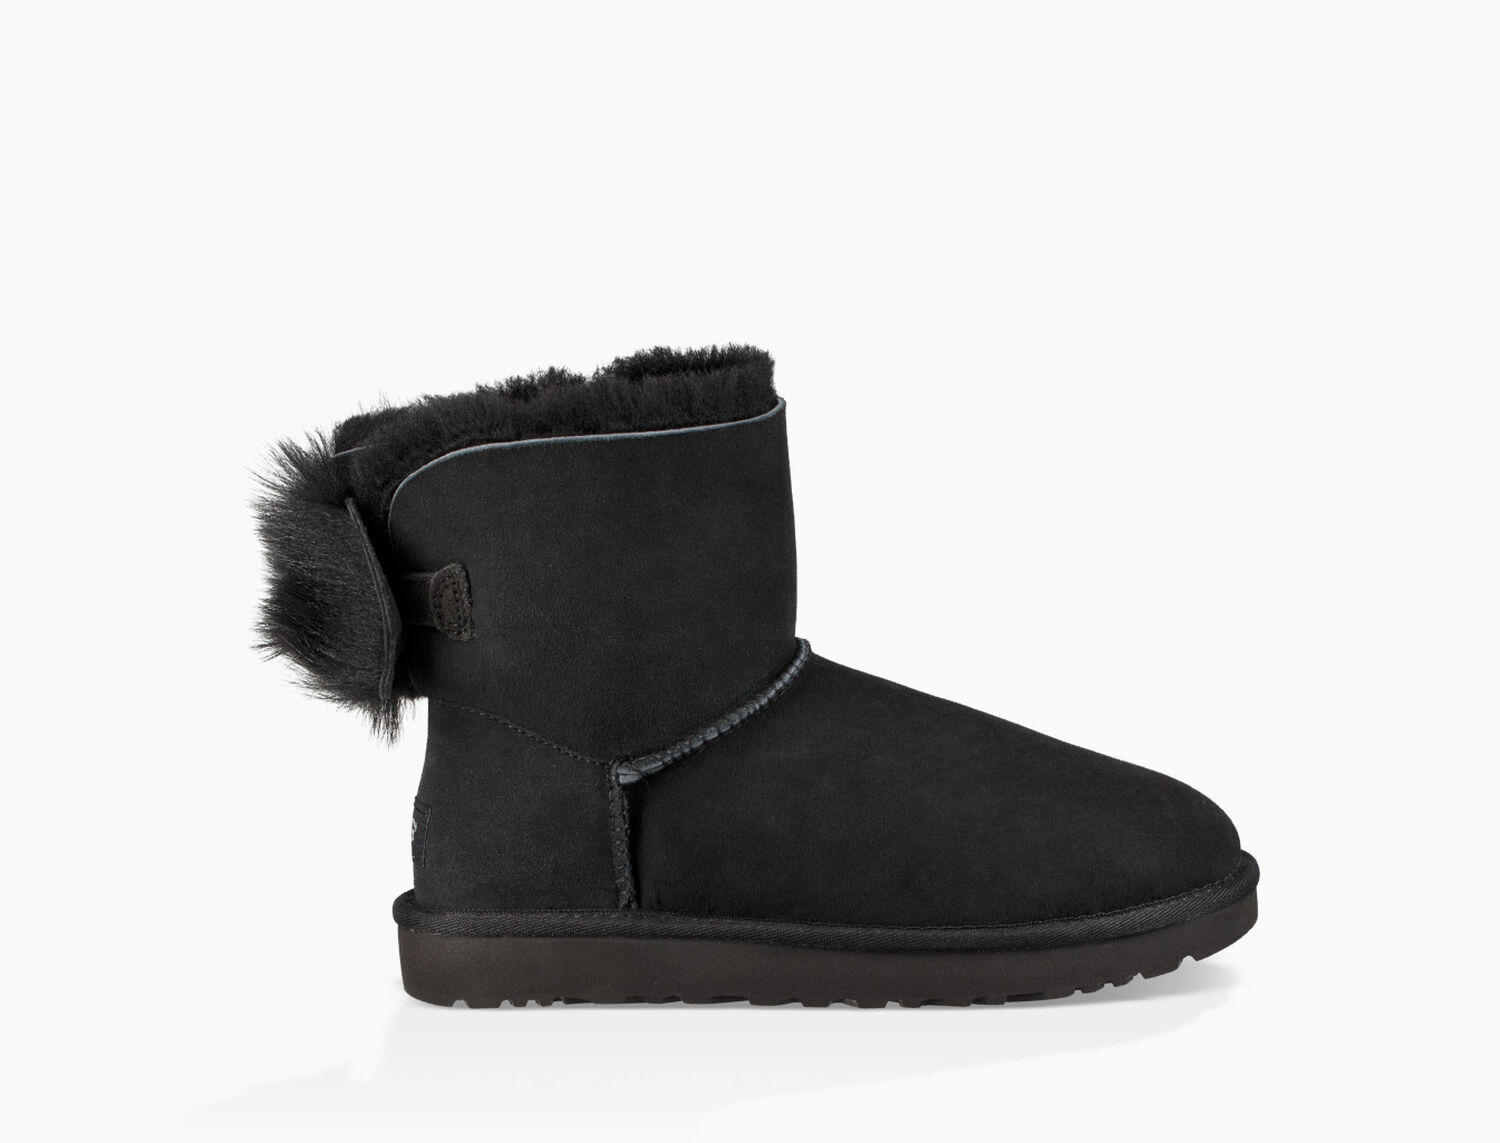 3b568eb2926 Women's Share this product Classic Mini Fluff Bow Boot